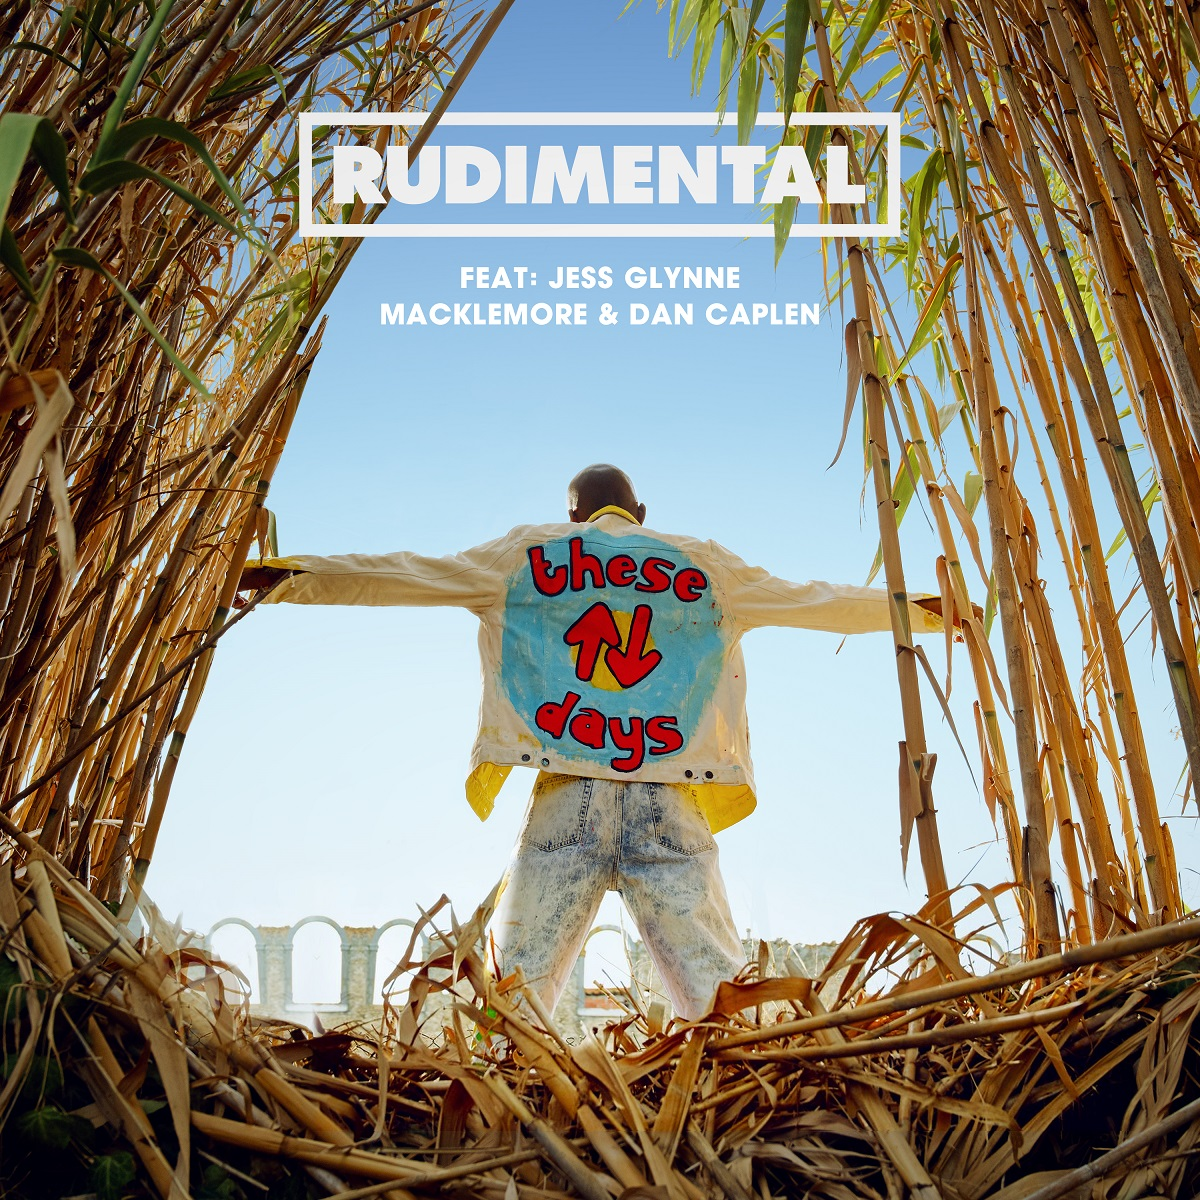 Cover: RUDIMENTAL FEAT. JESS GLYNNE F, THESE DAYS